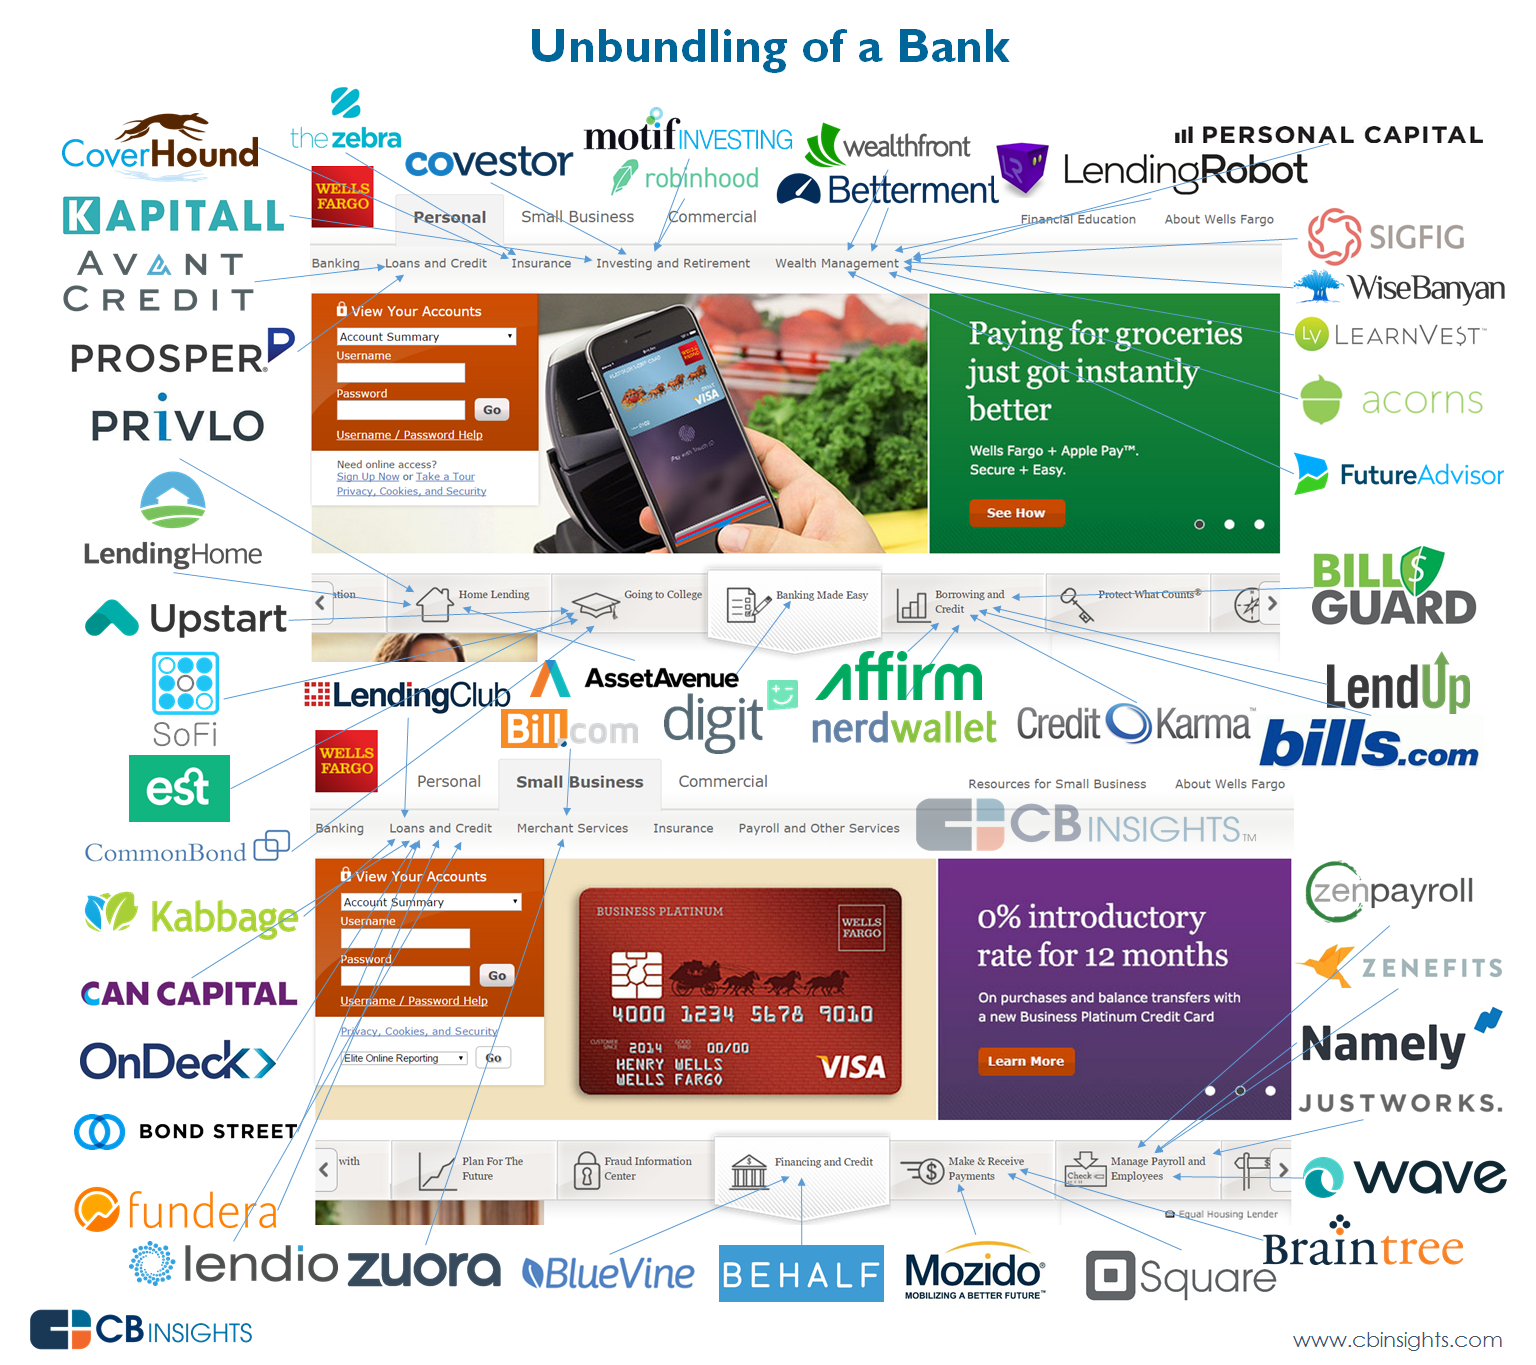 Unbundling of a bank V2